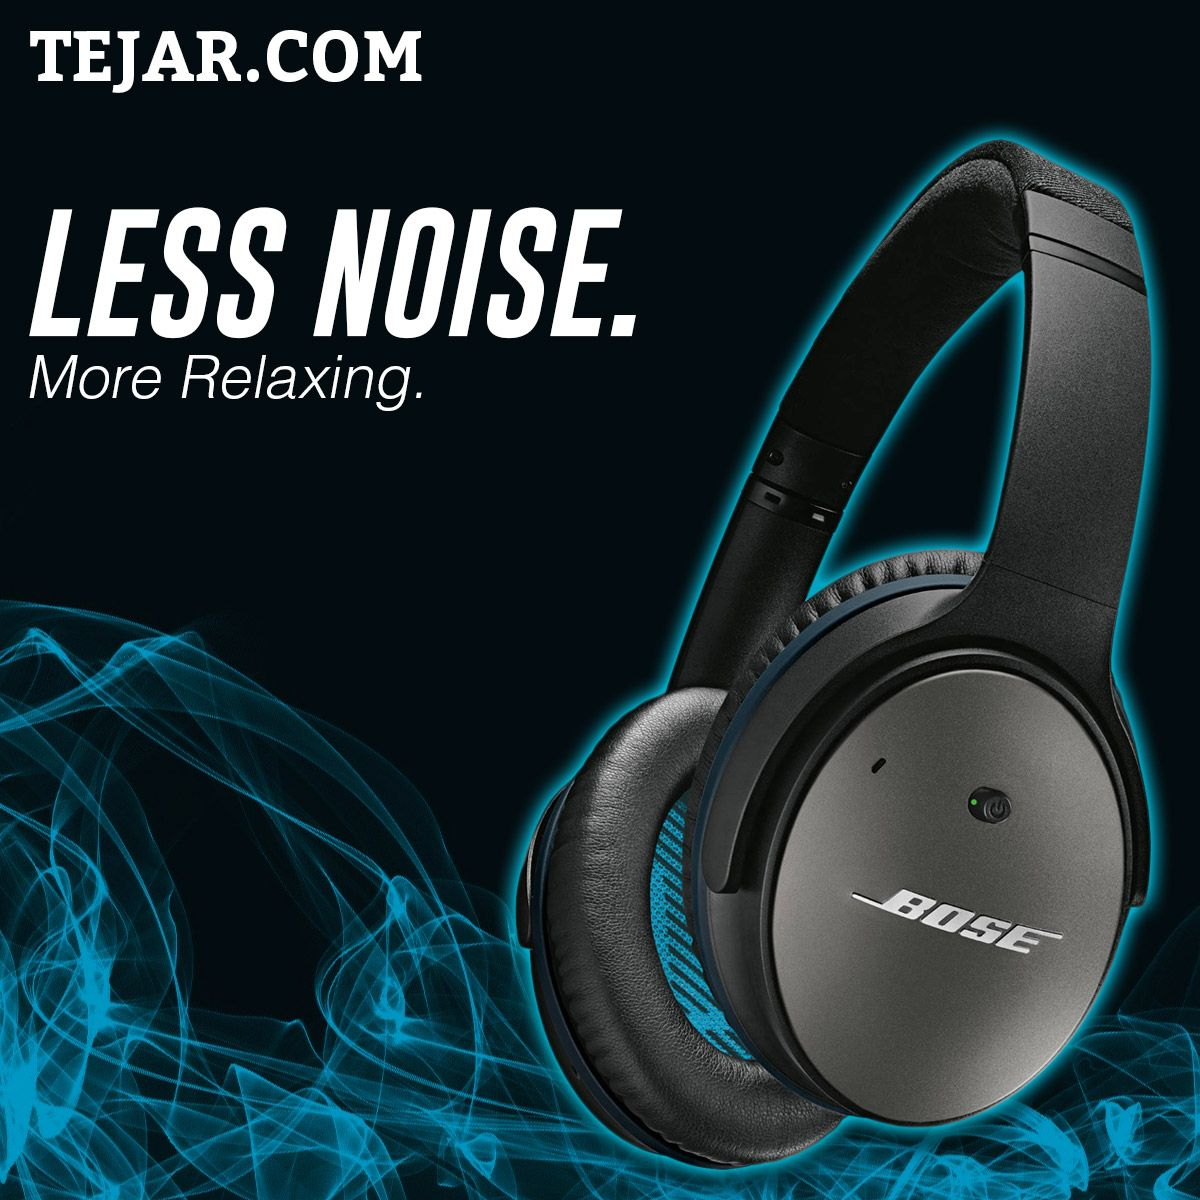 Bose Quietcomfort 25 Acoustic Noise Cancelling Headphones Headphones Noise Cancelling Headphones Noise Cancelling